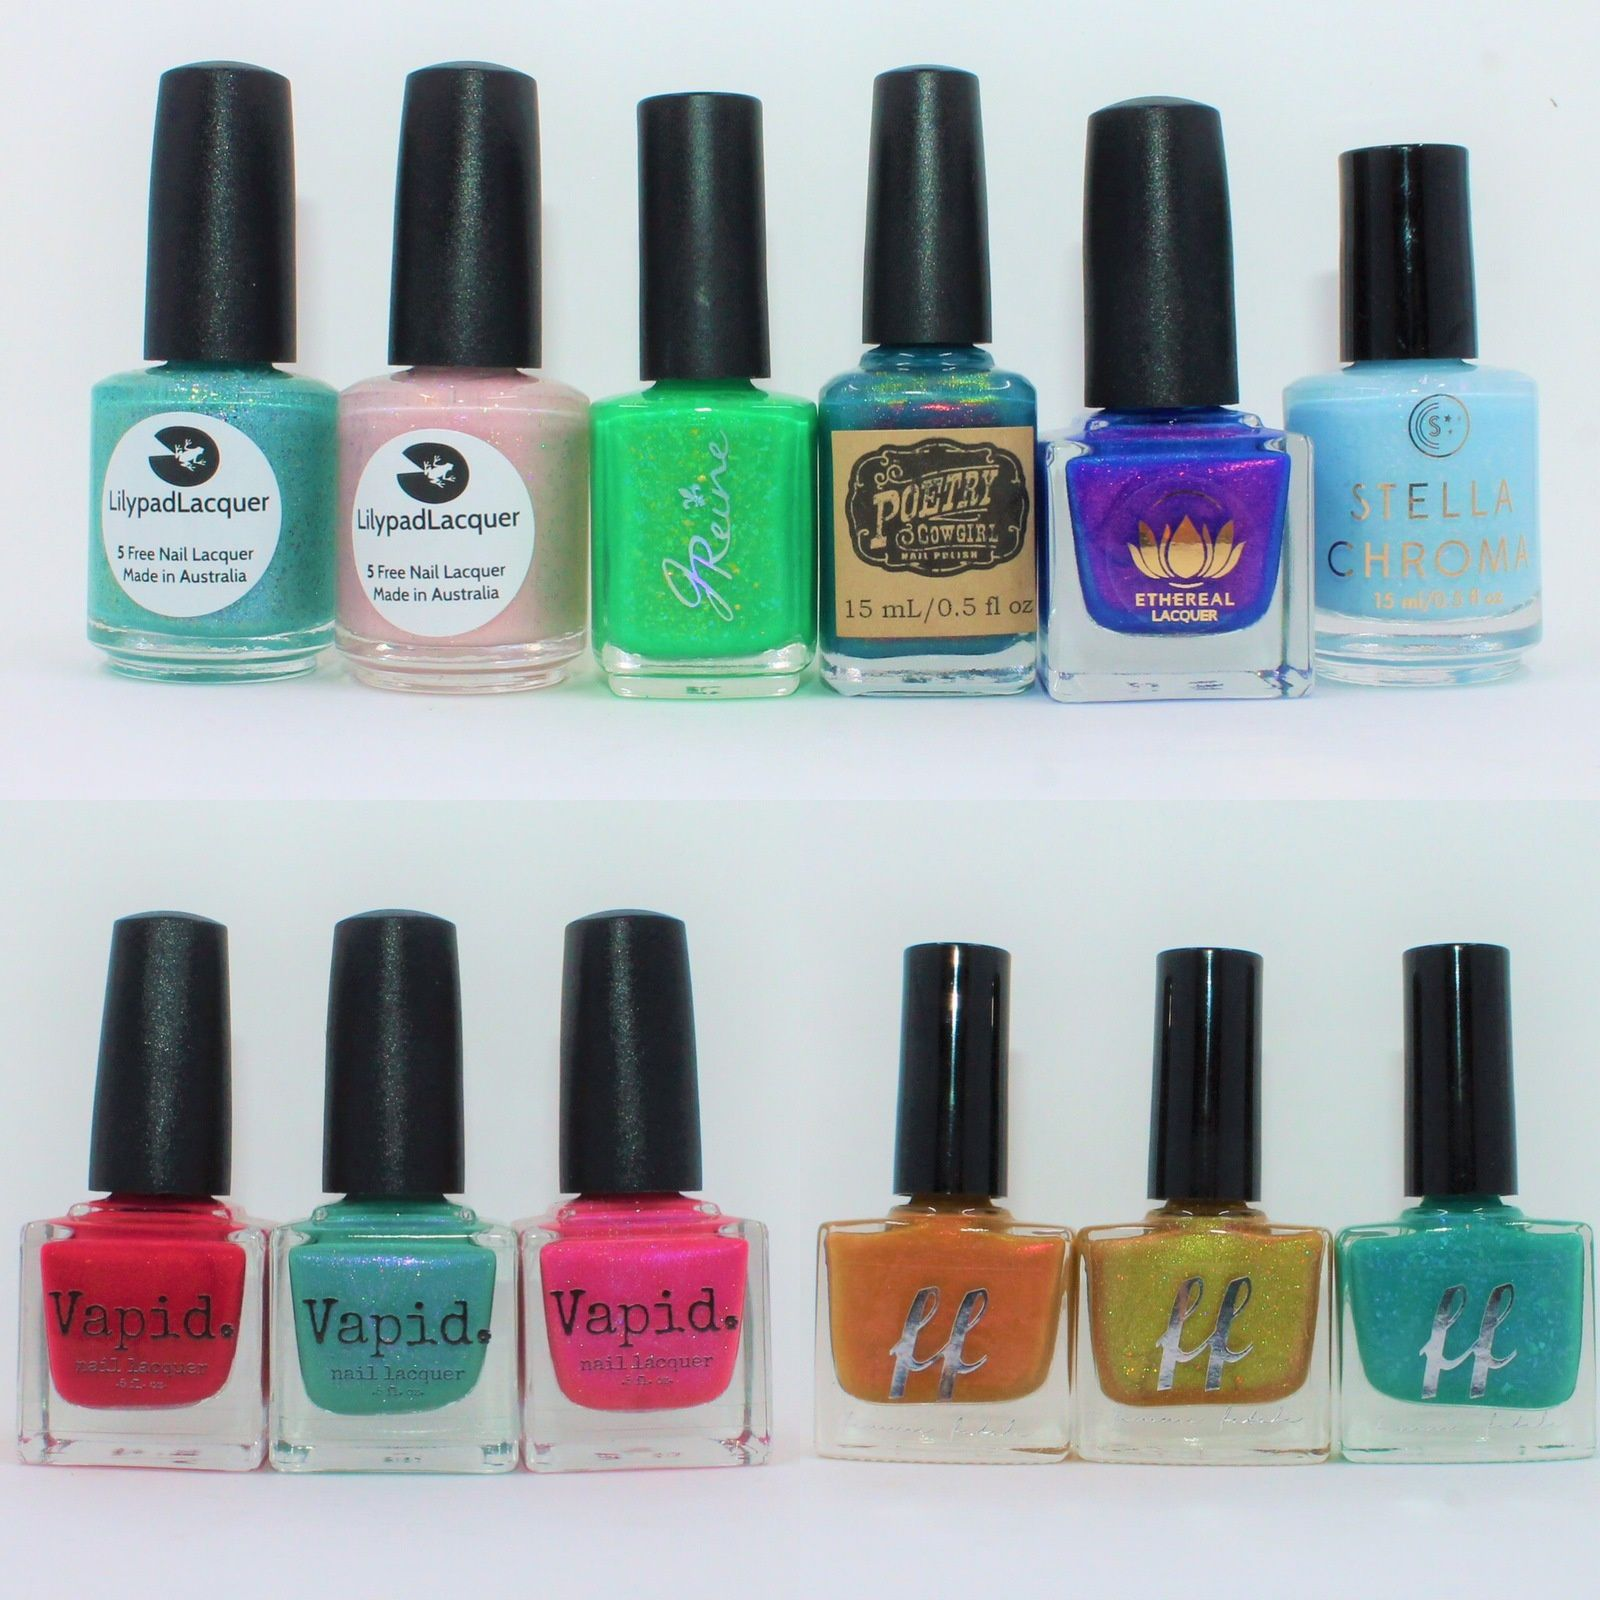 PPU March 2019 & HHC February 2019 (Lilypad Lacquer Aquqrius, It's Not Me It's You, JReine Skurrrd, Poetry Cowgirl Sing 'Em Good, Ethereal Lacquer Superposition, Stella Chroma Turtles inteh Clouds). Vapid Lacquer Water Your Melons, Thorn Down for What, Succittumi Baby. Femme Fatale Cosmetics Truth or Dare, The Summer of 1970, Succulent Garden.